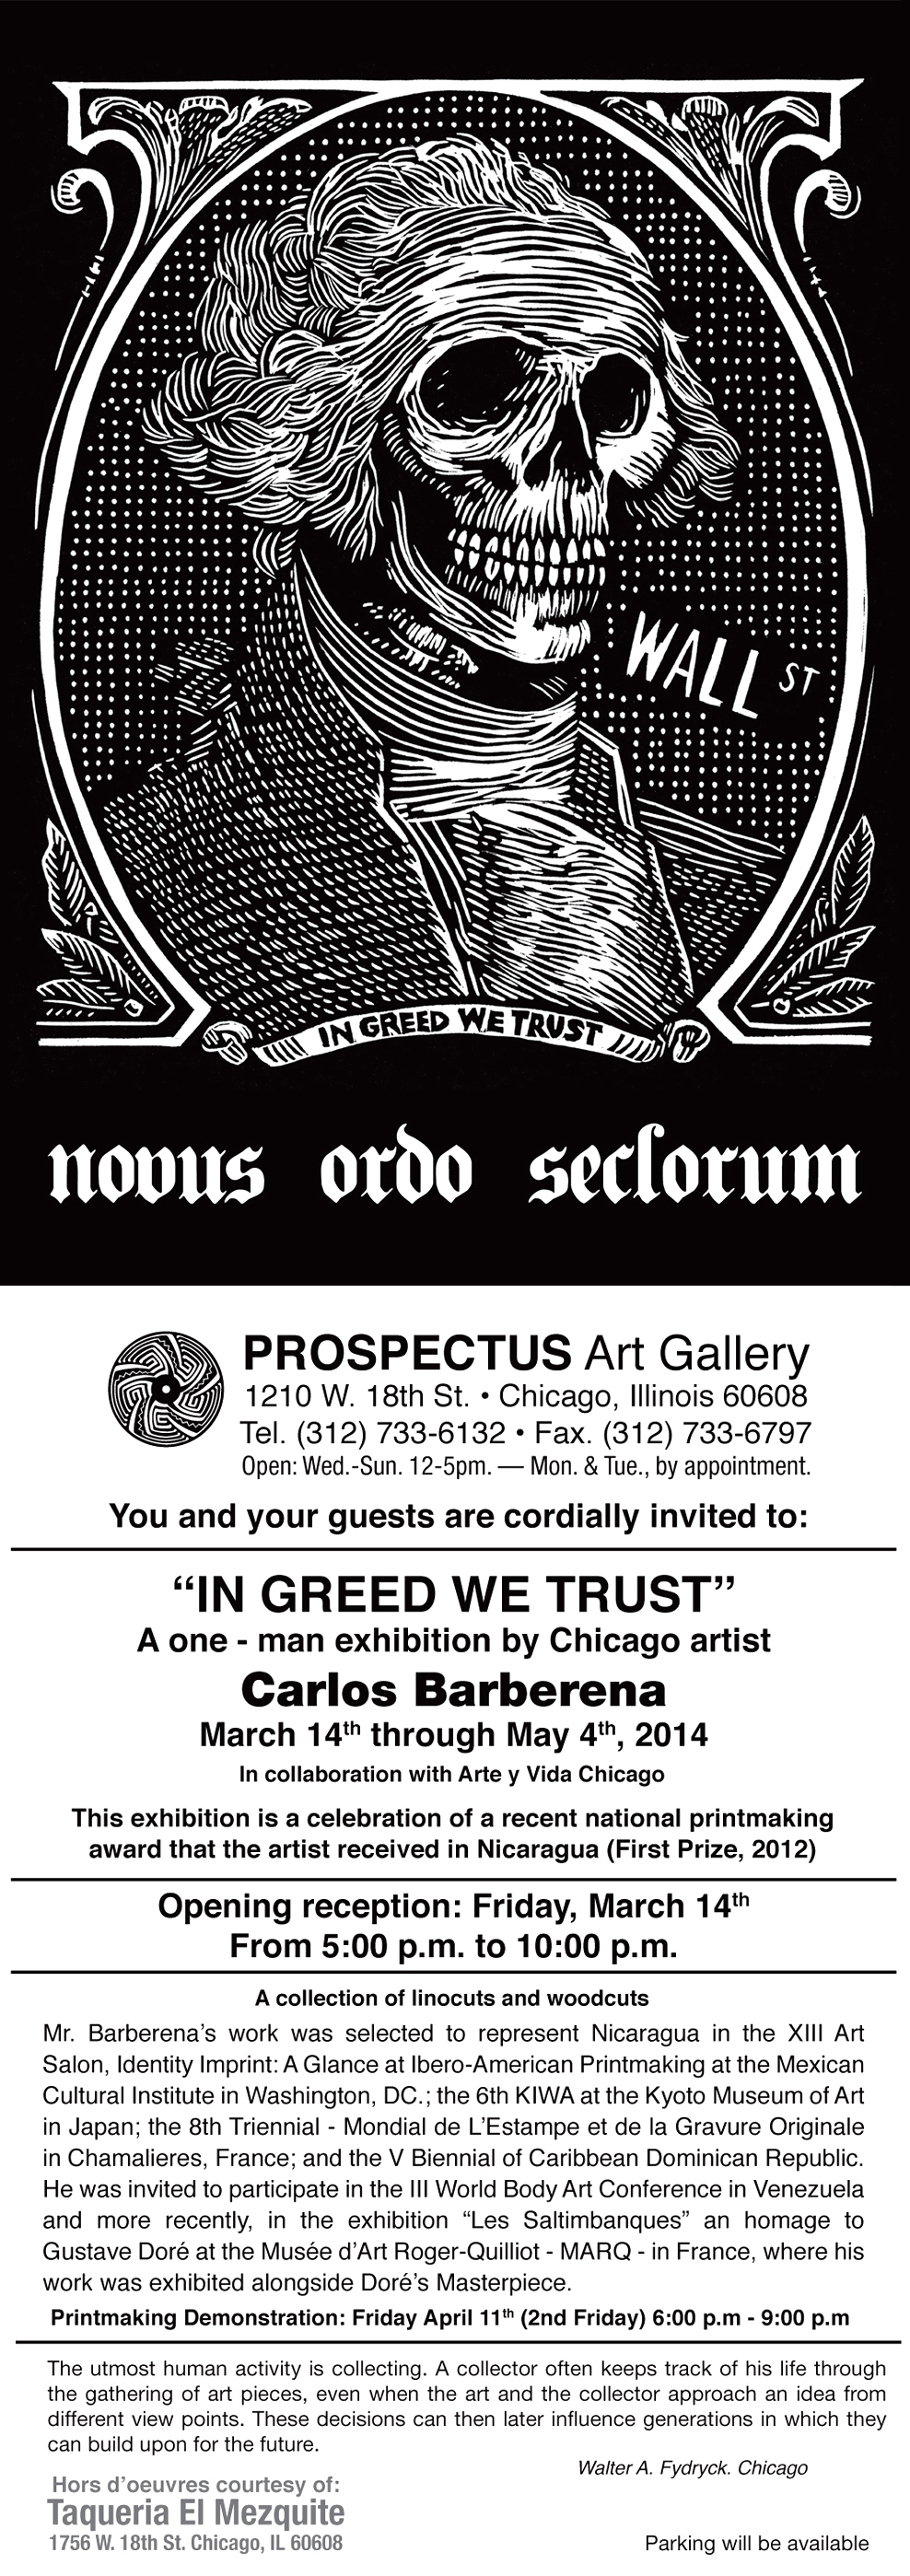 In greed we trust at prospectus gallery